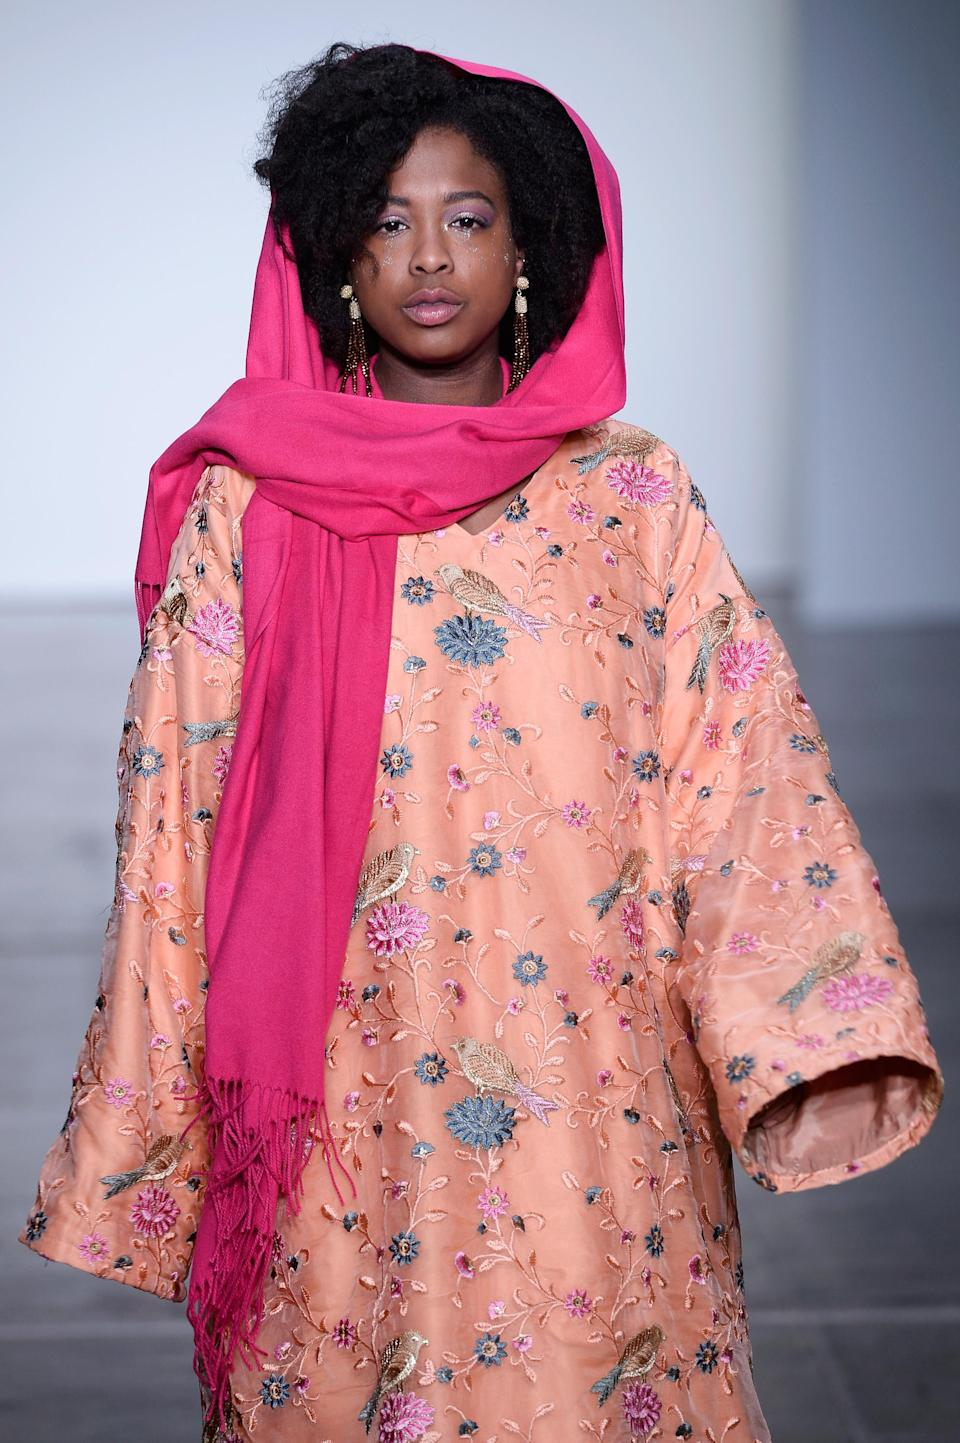 <p>Even with a headscarf, this is a natural hair moment worth noting. (Photo: Getty Images) </p>